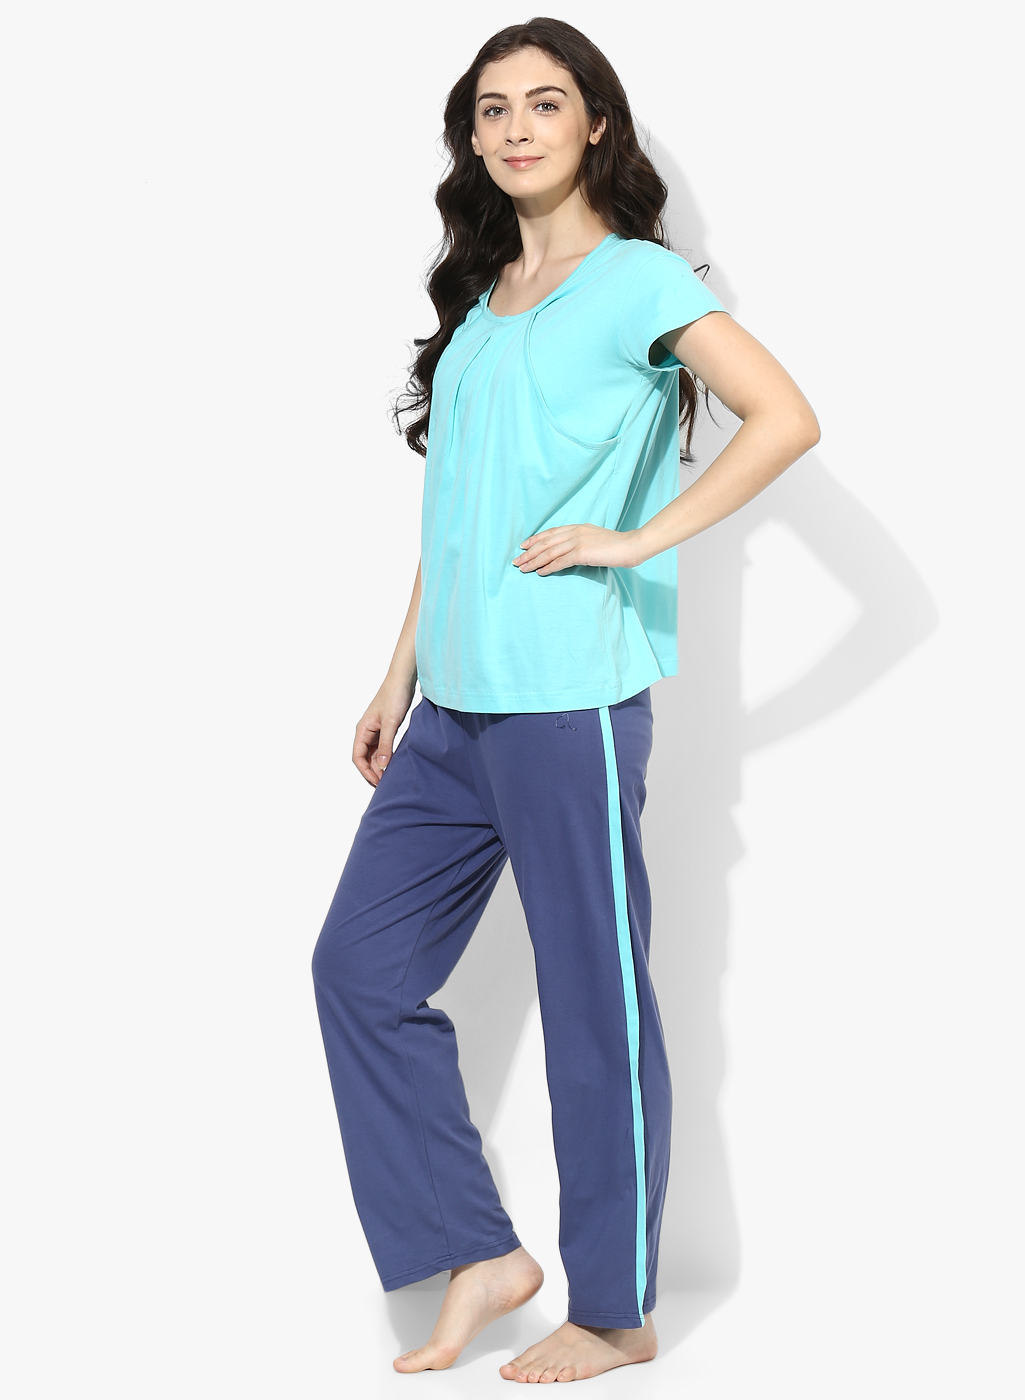 873c75265a 9teenAGAIN Women s Turquoise   teal nursing nightsuit set - All ...